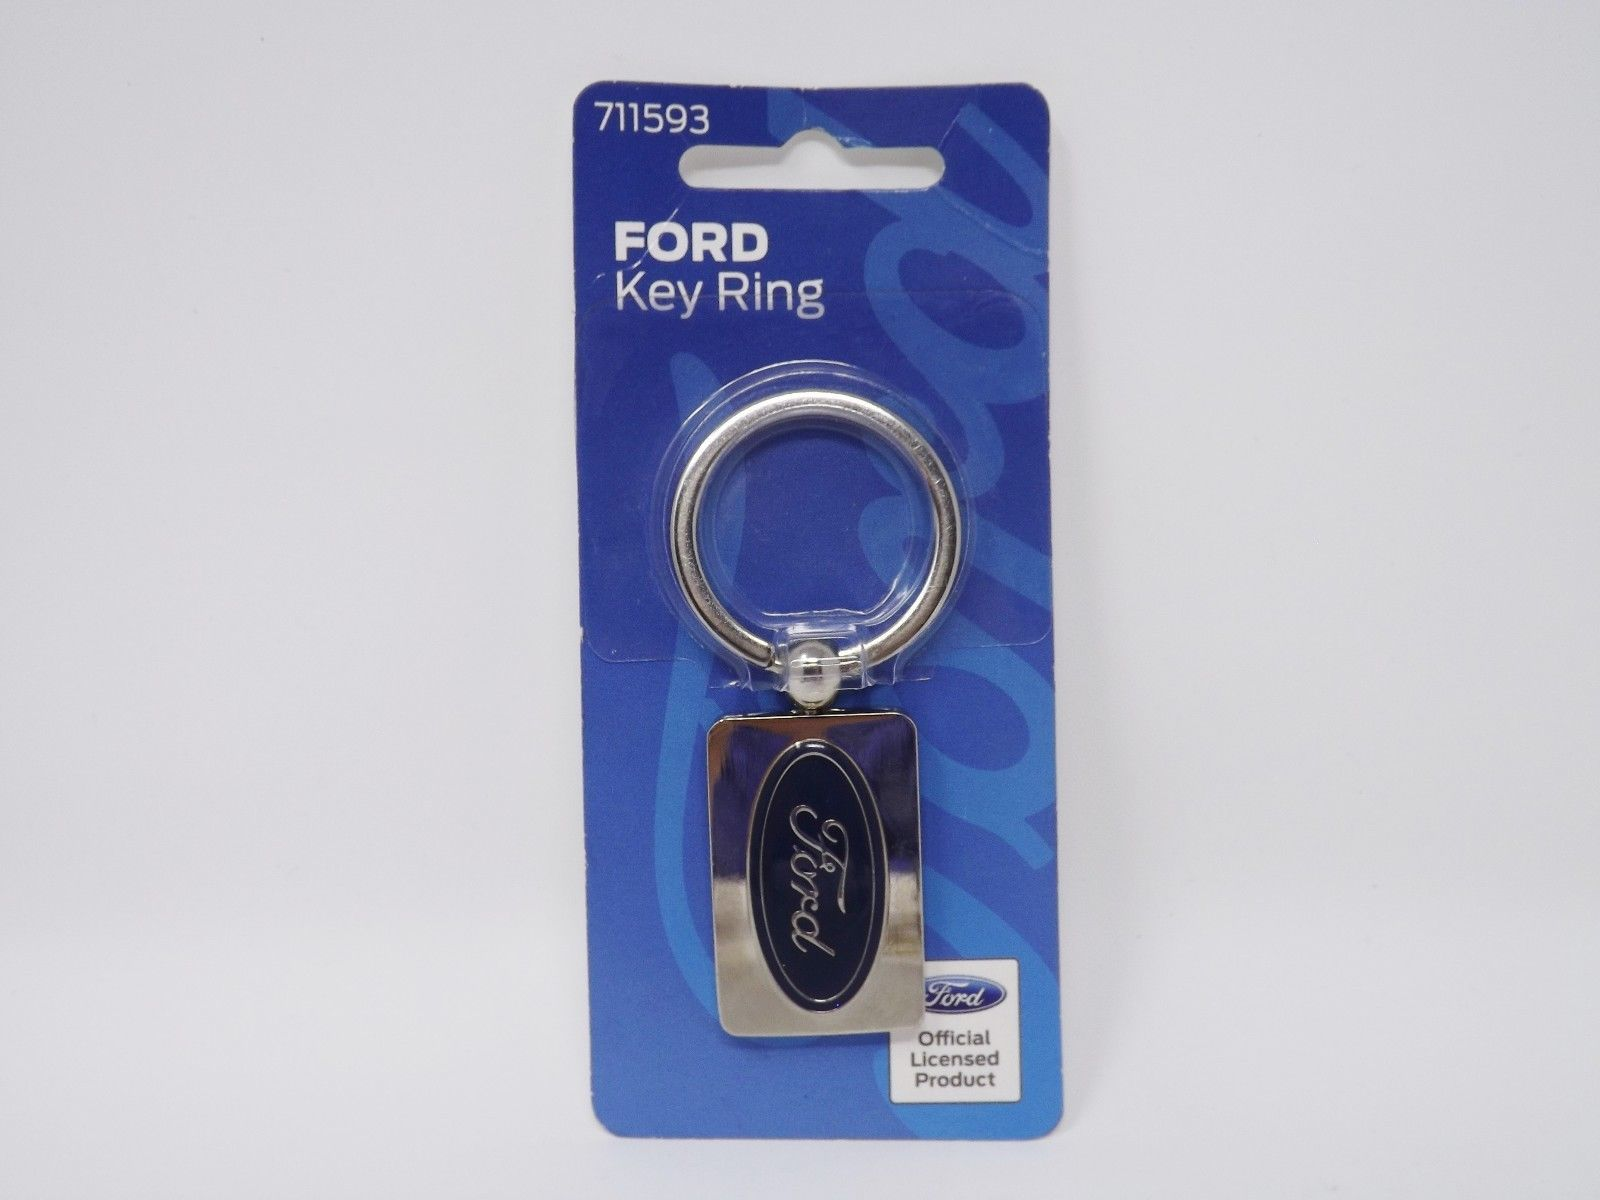 The Hillman Group - New - Metal Automobile Key Ring image 2